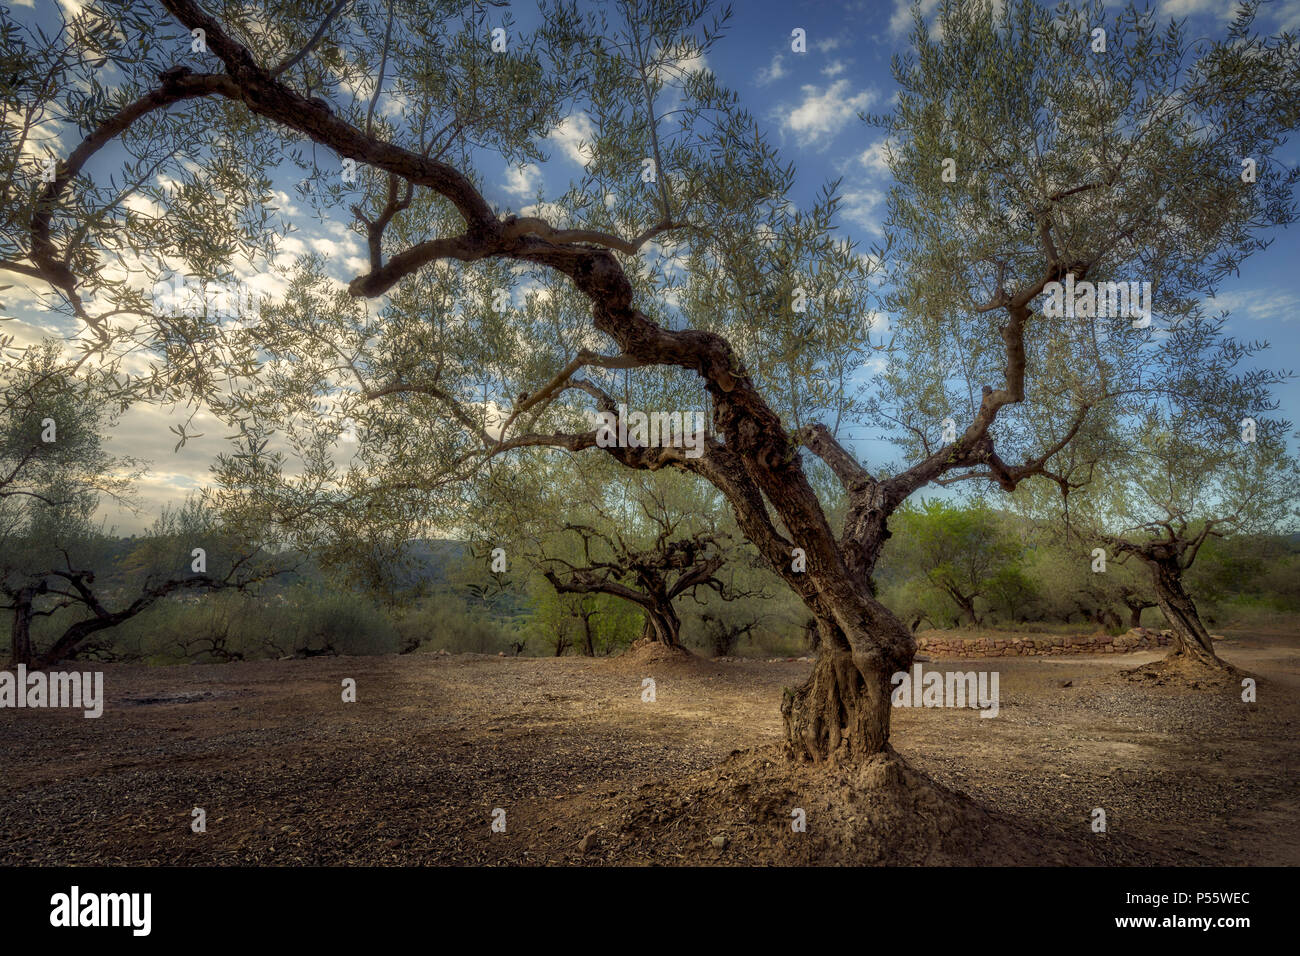 Olive trees in La Vall d'Almonacid (Castellon - Spain) - Stock Image